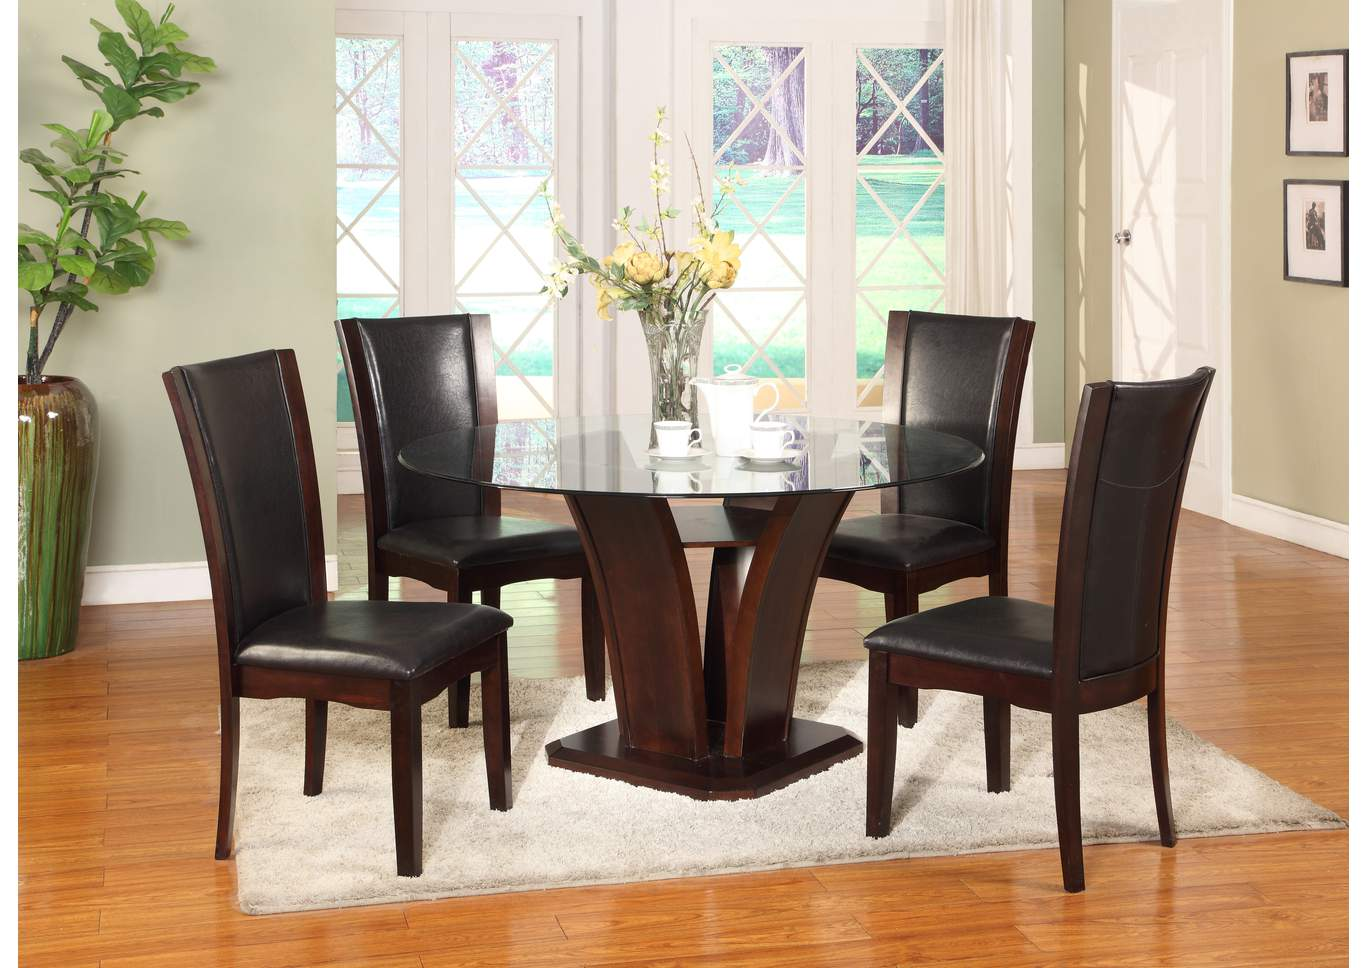 Camelia Glass Round Dining Room Table W 4 Side ChairsCrown Mark